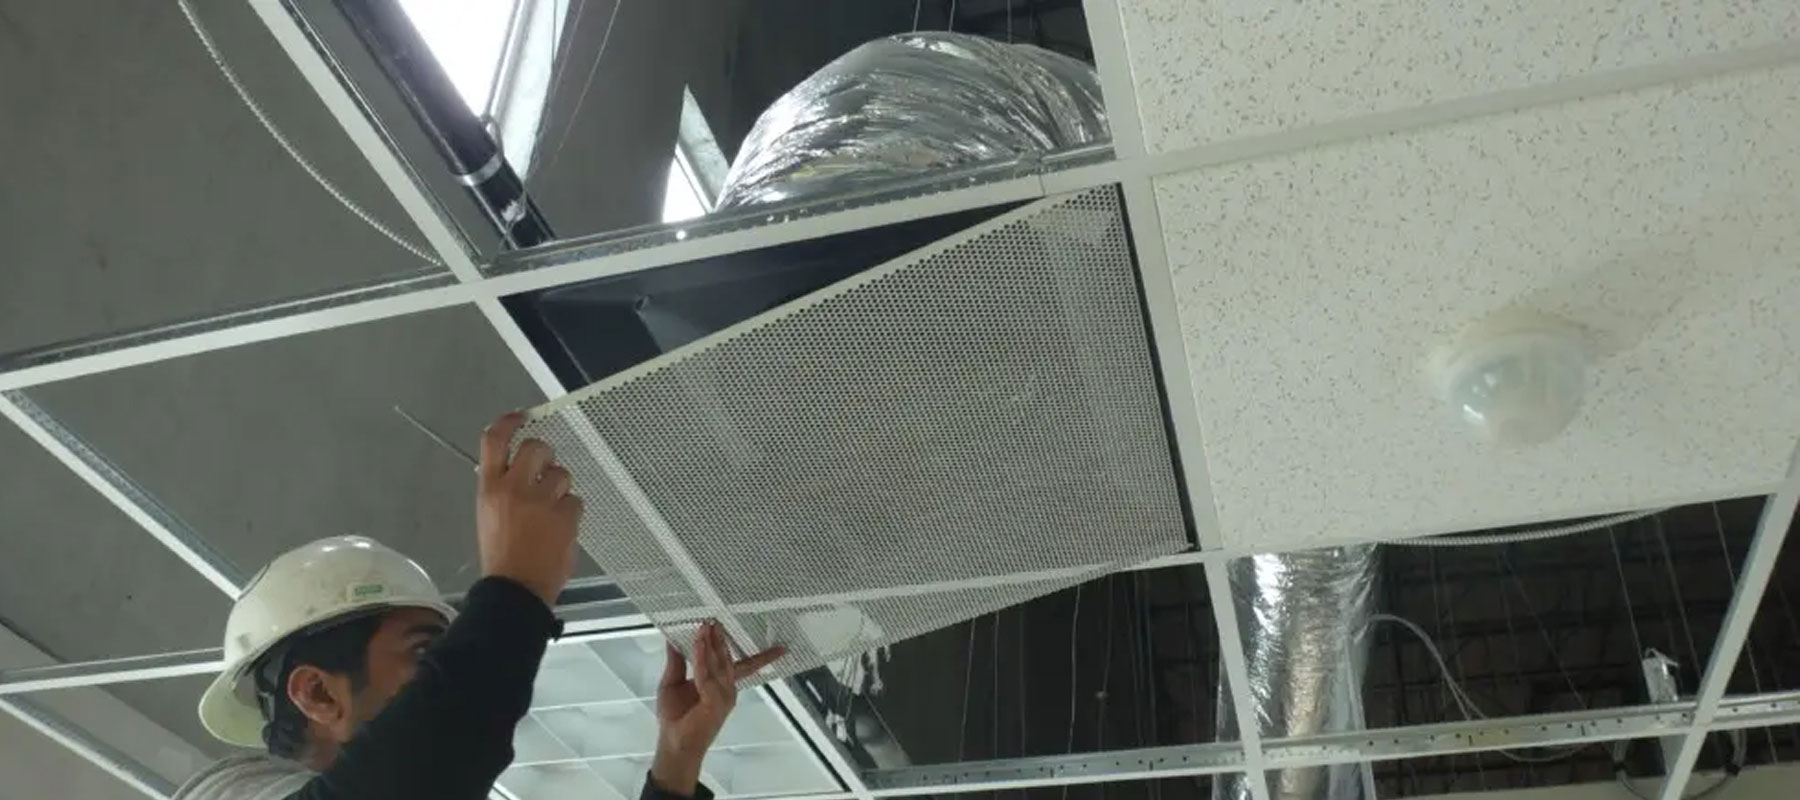 Commercial Air Duct Cleaning | Mr Duct Cleaner